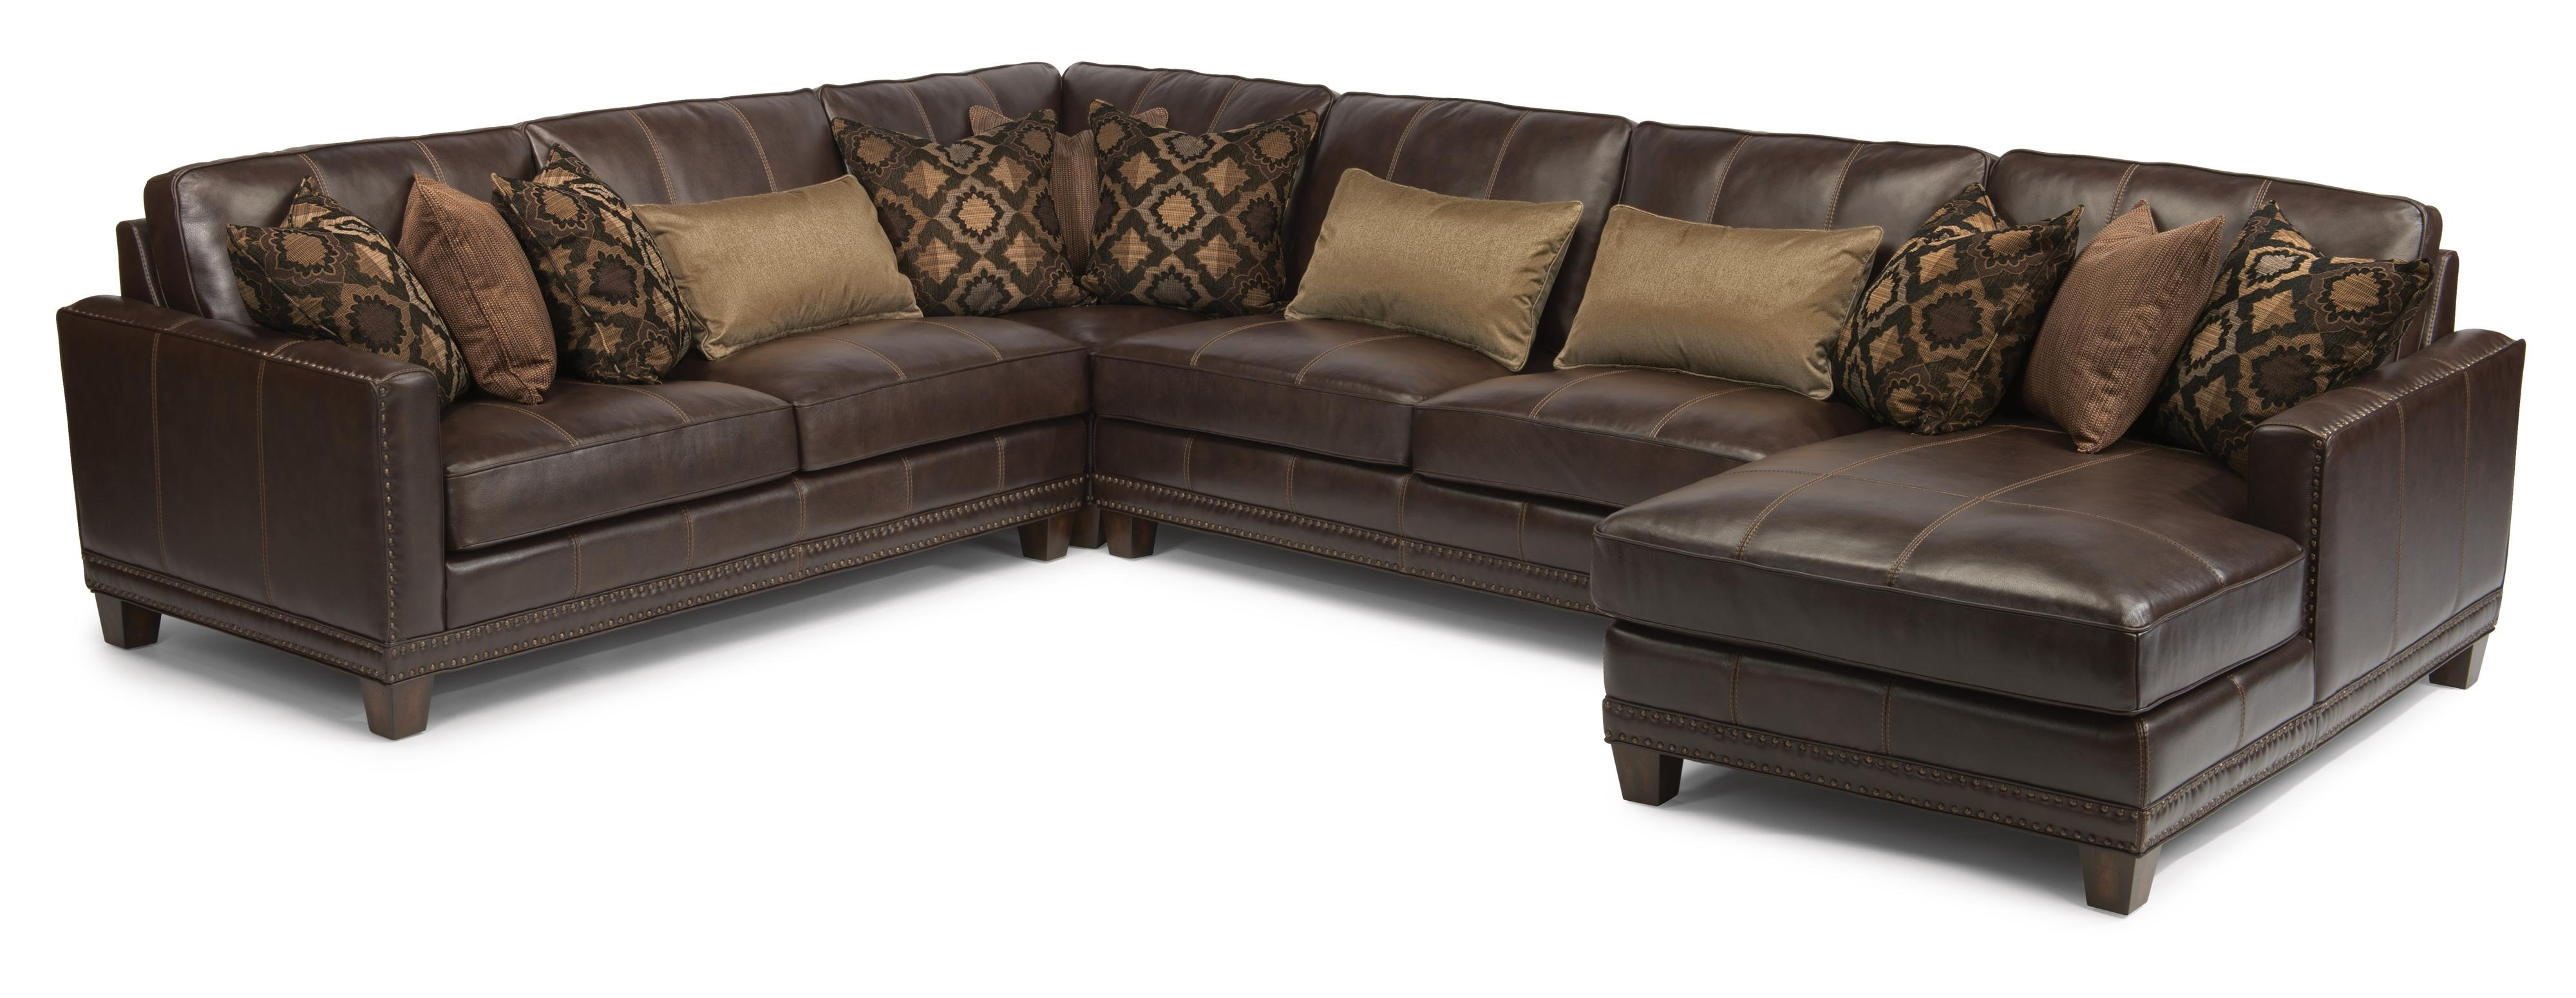 Flexsteel Latitudes - Port Royal Transitional Four Piece Sectional inside Meyer 3 Piece Sectionals With Laf Chaise (Image 11 of 30)